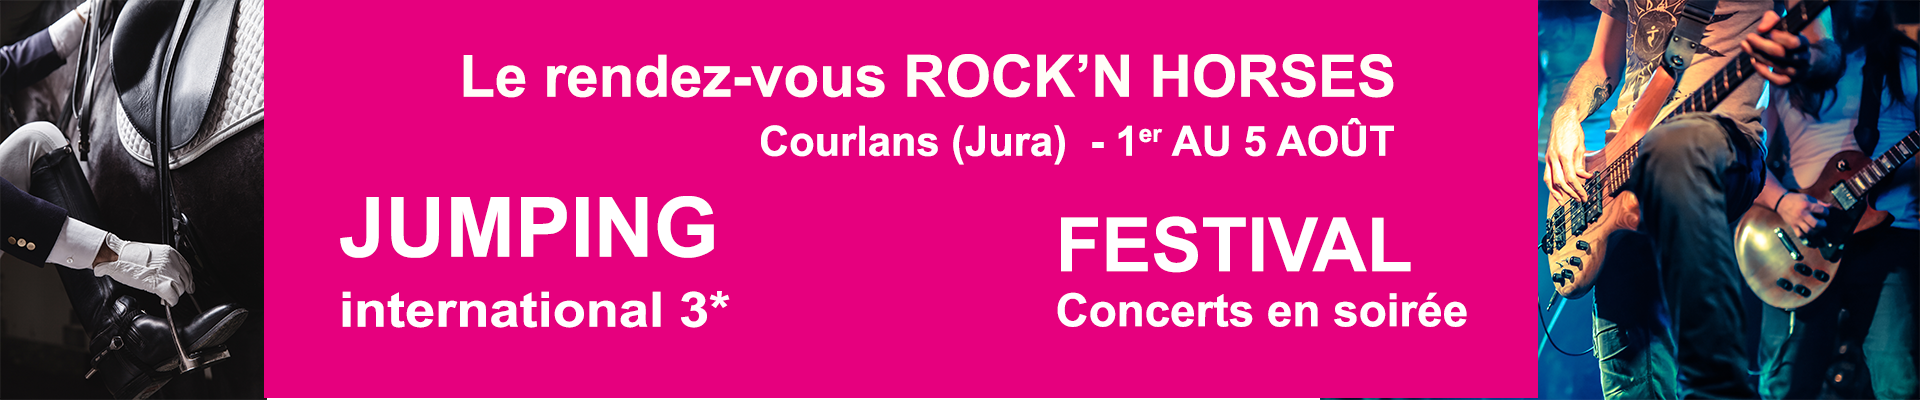 ROCK'N HORSES - COURLANS 3* 2018 / 01/08/2018 - 05/08/2018